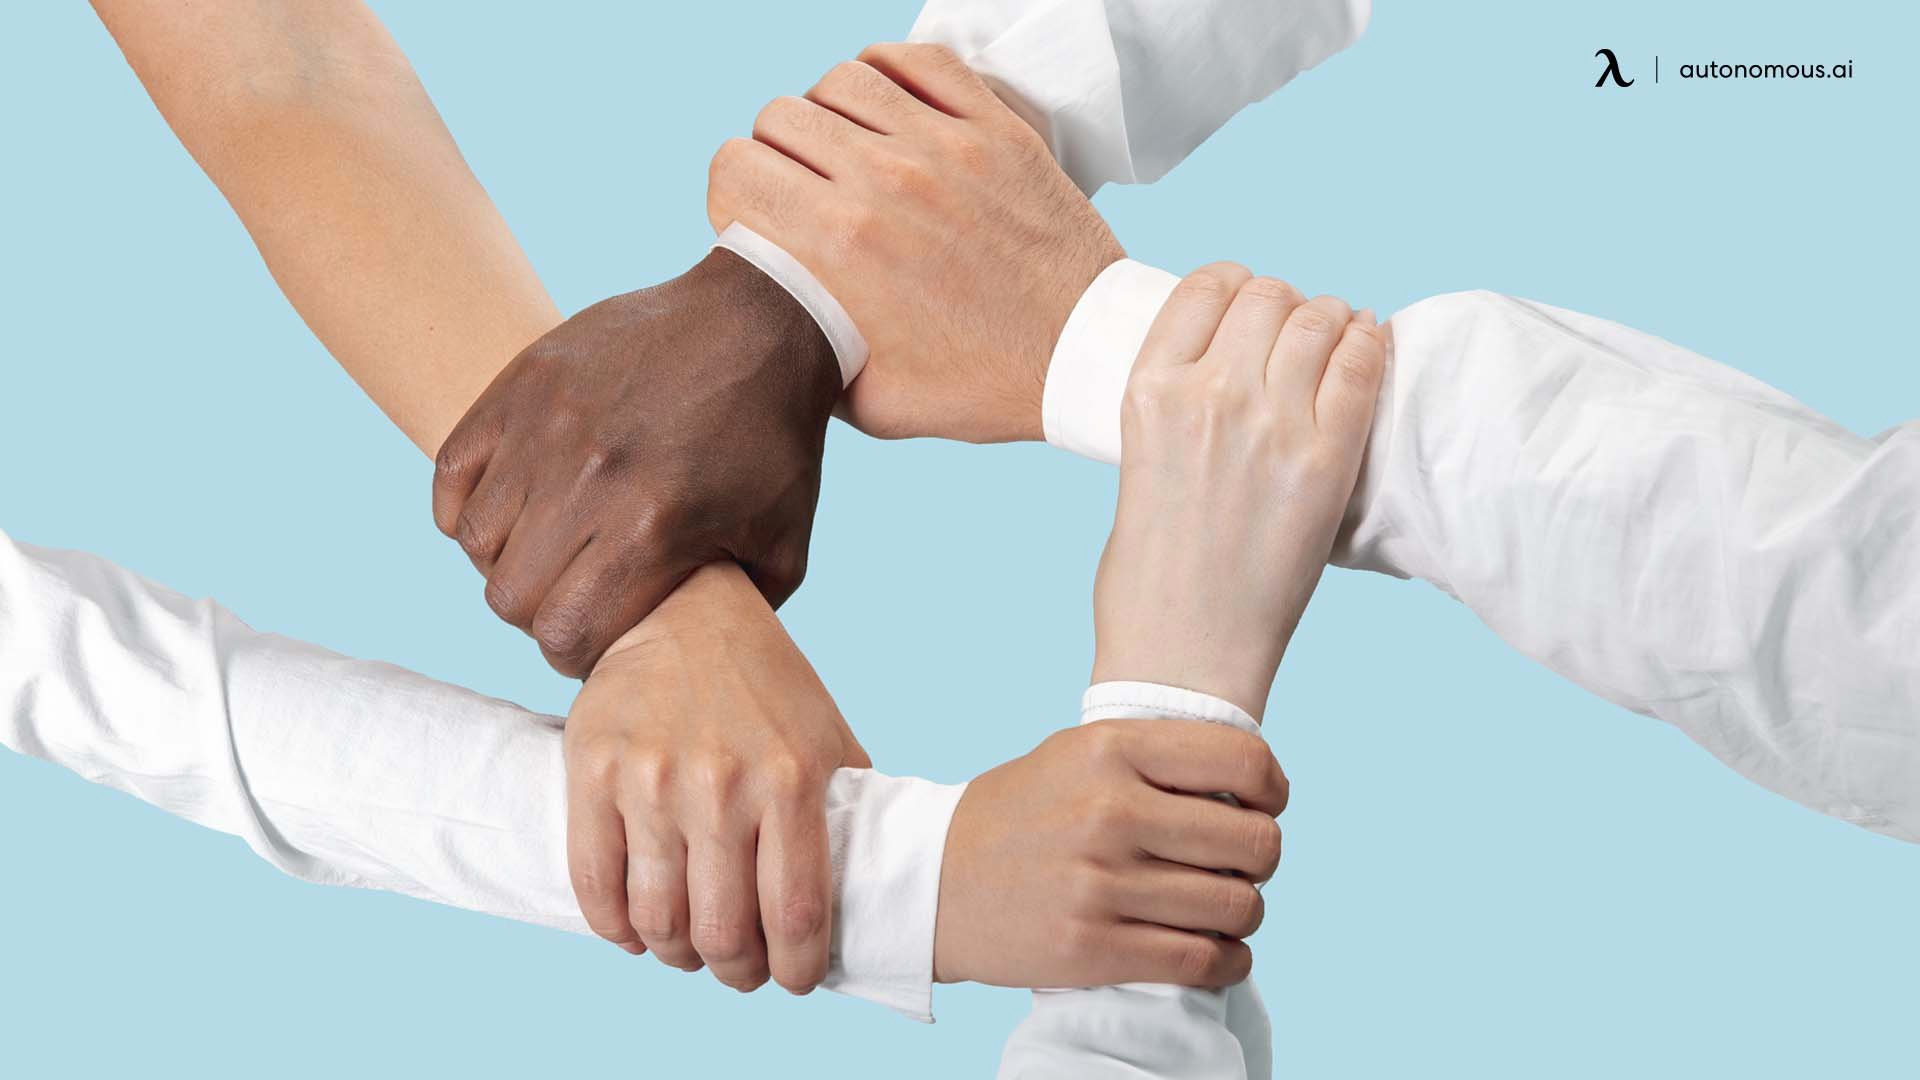 Enable Collaboration Between All Team Members